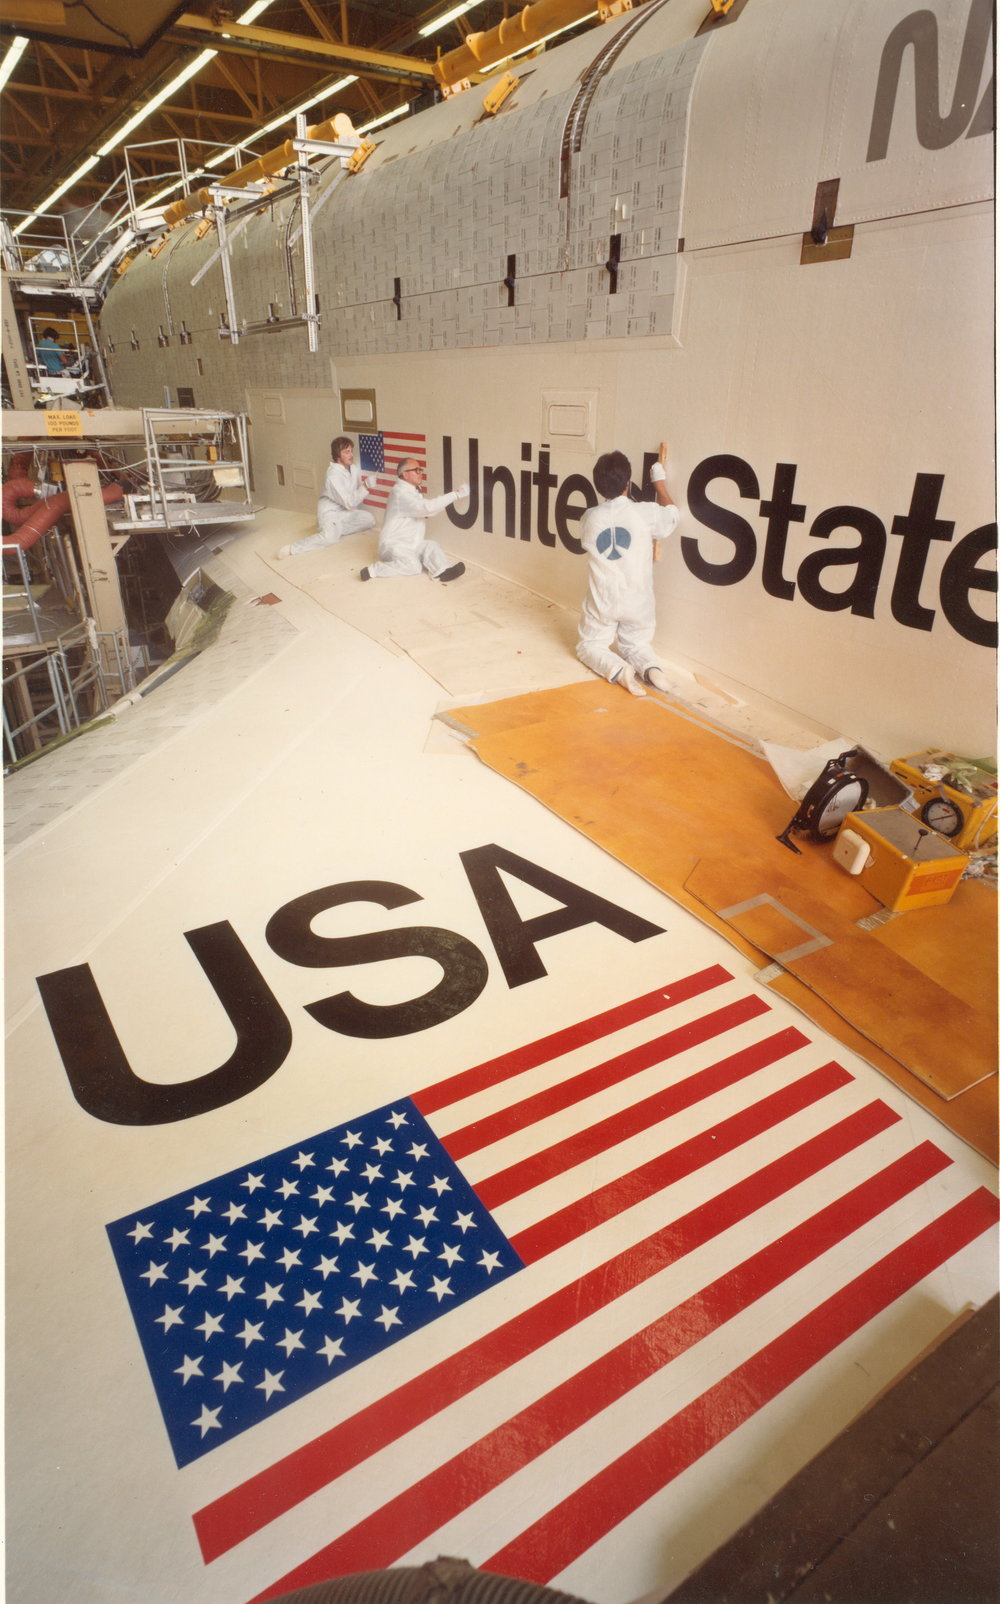 workers finish lettering and decals on shuttle at rockwell 001.jpg